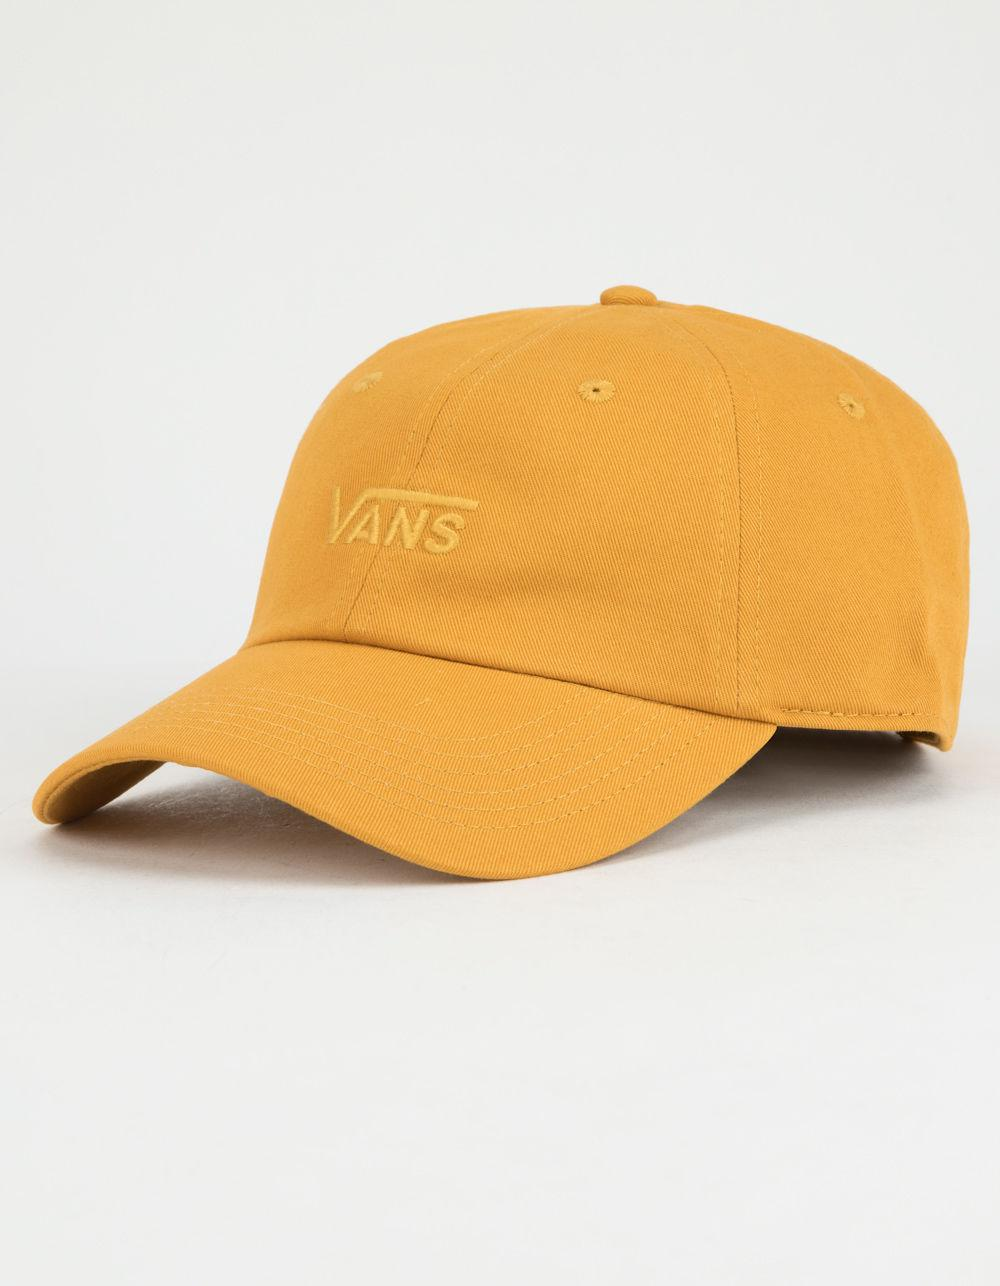 c44d7d19eafc3 Vans Court Side Womens Dad Hat in Yellow - Lyst